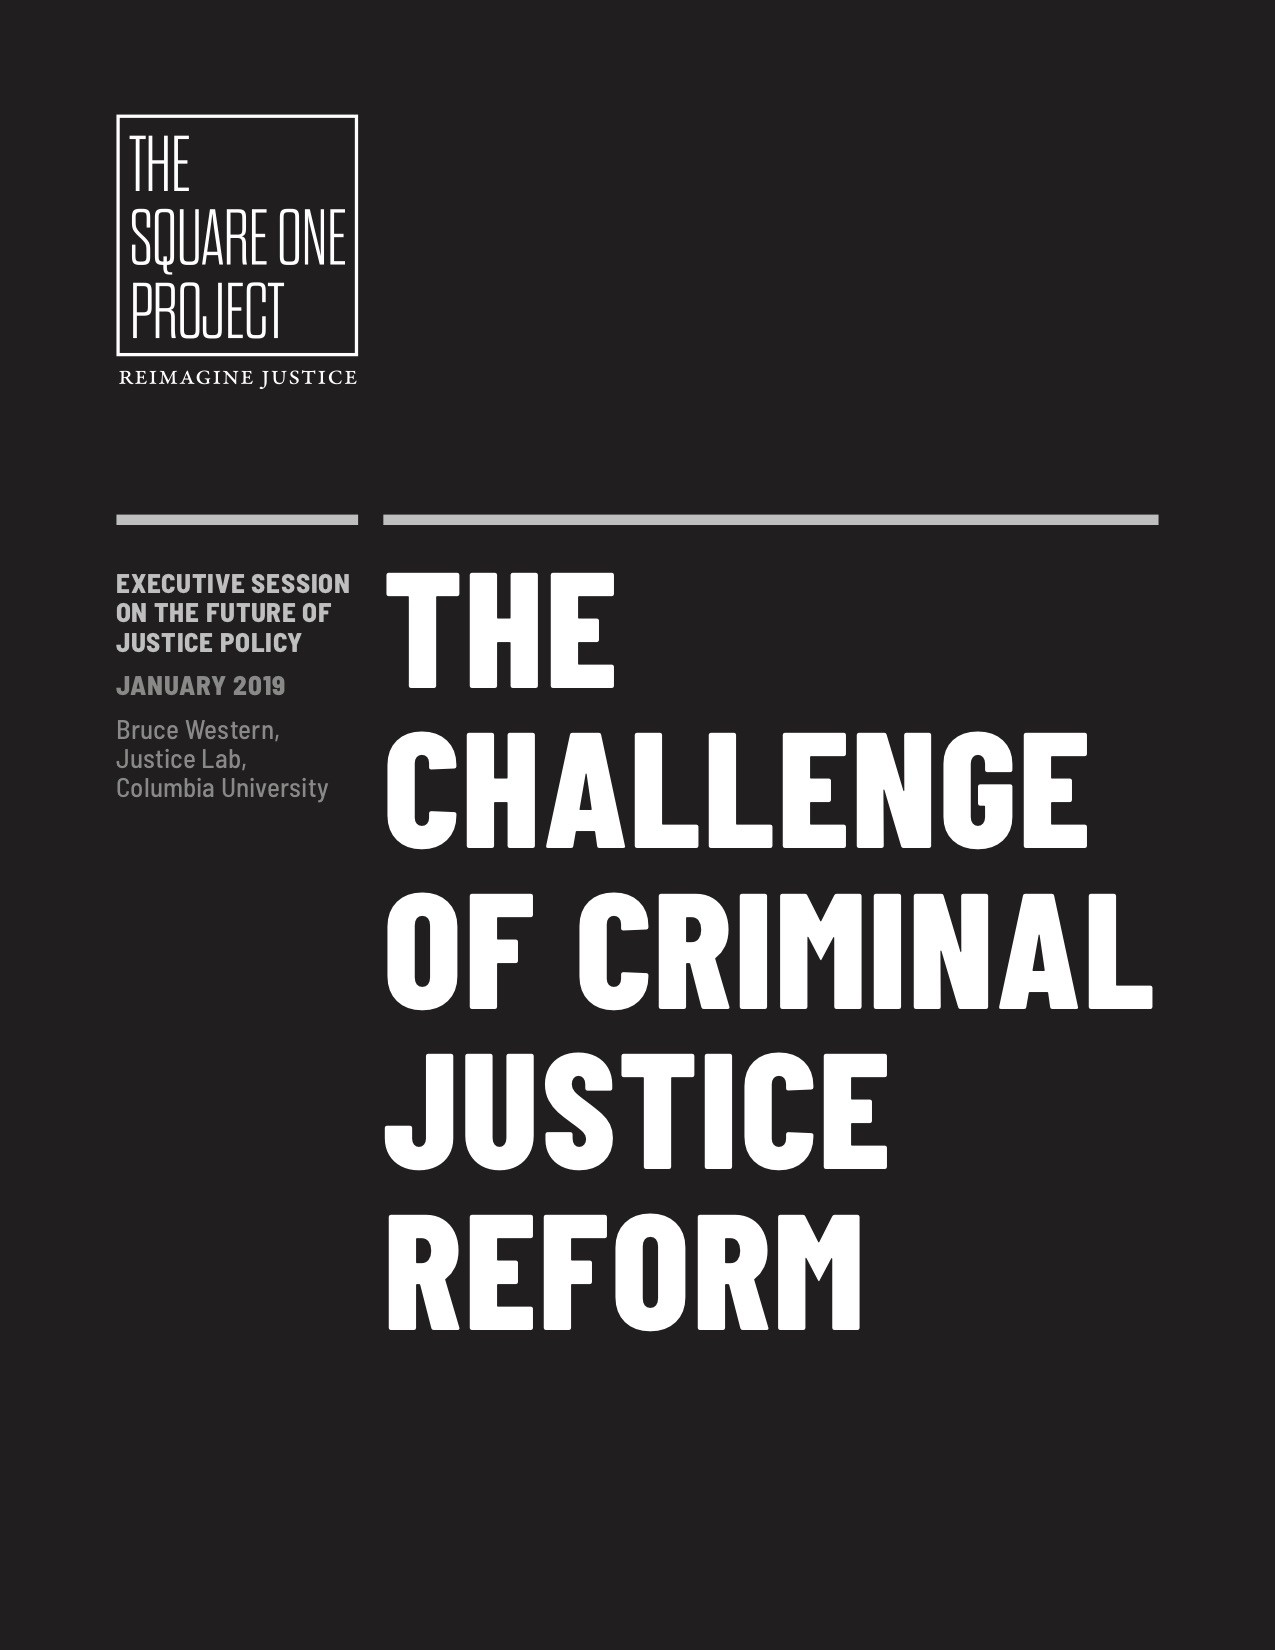 The Challenge of Criminal Justice Reform